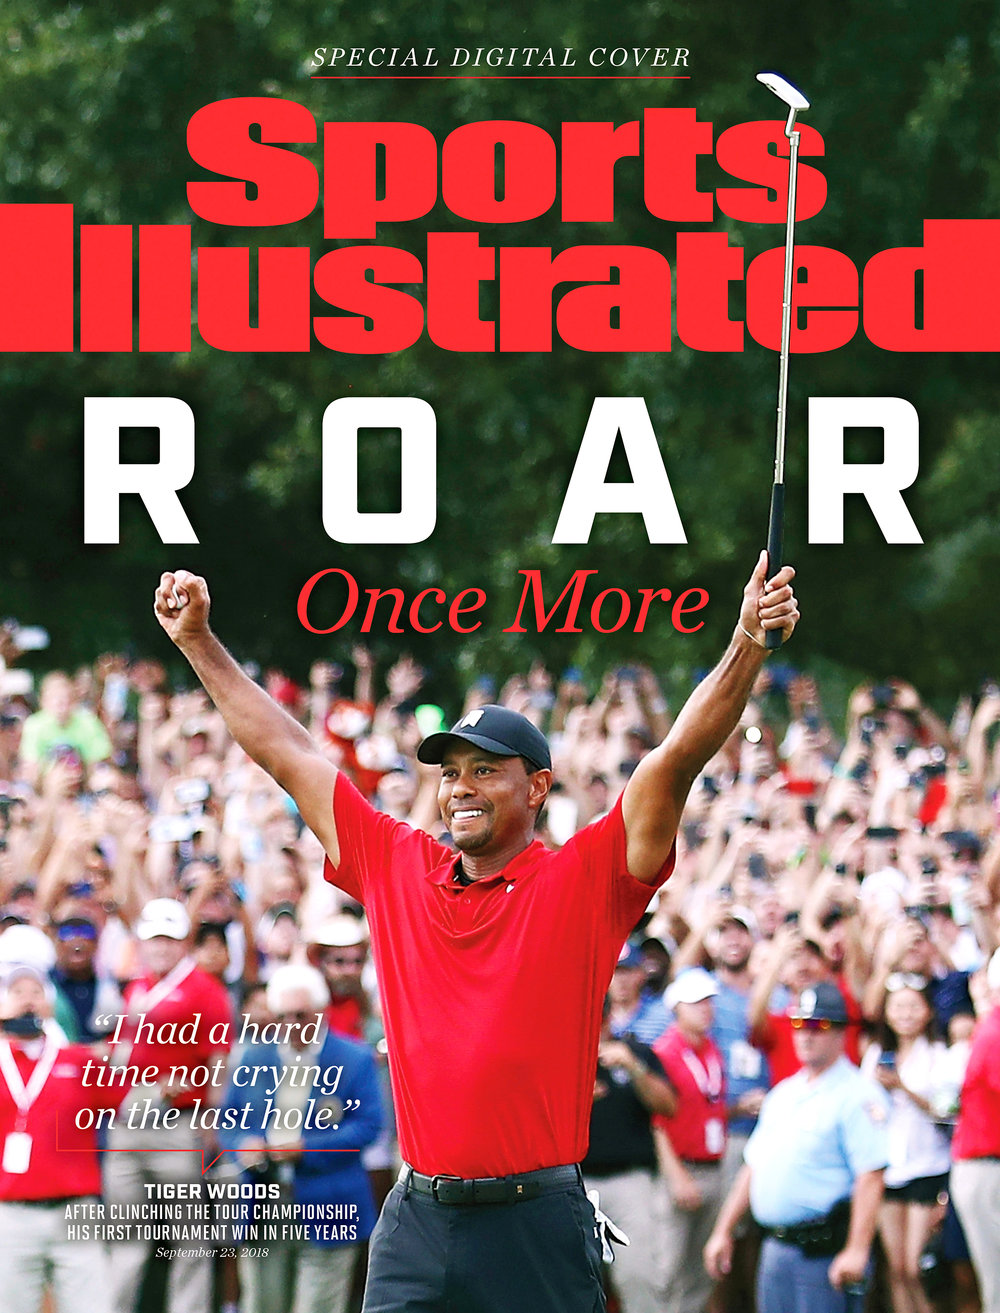 Tiger Woods Sports Illustrated.jpg